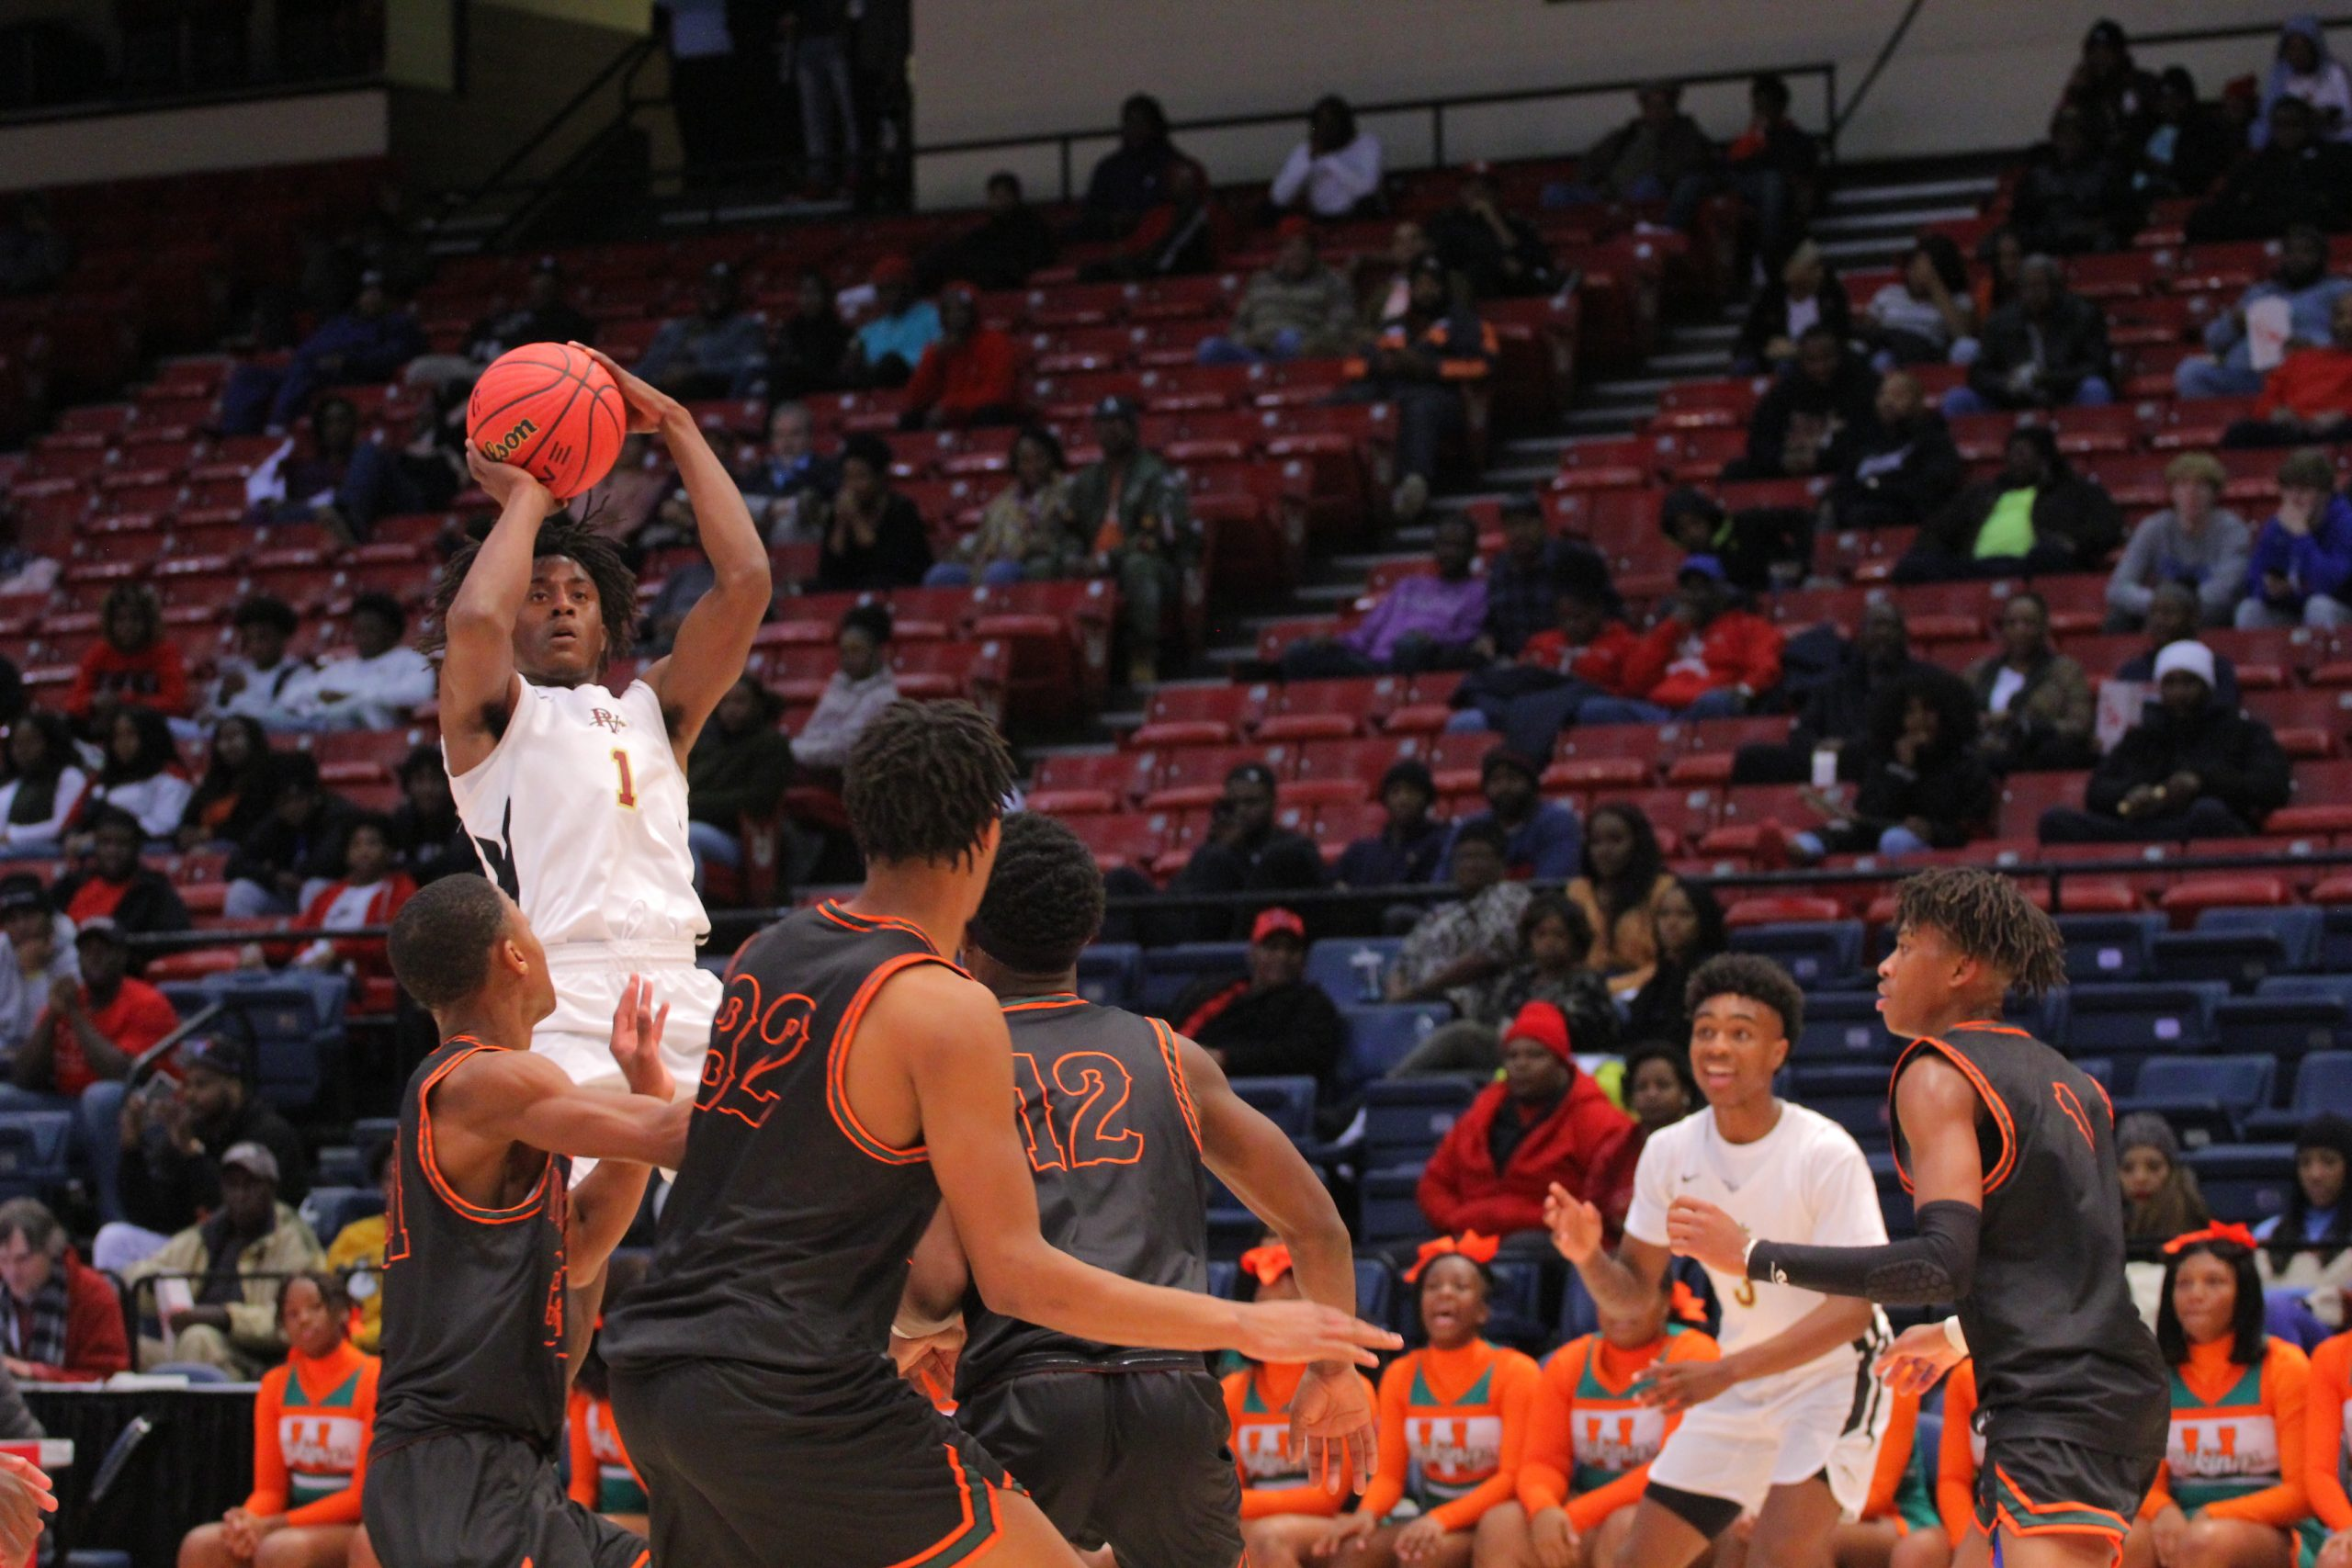 Clay-Chalkville girls, Pinson Valley boys travel to JSU with Elite Eight berth on the line